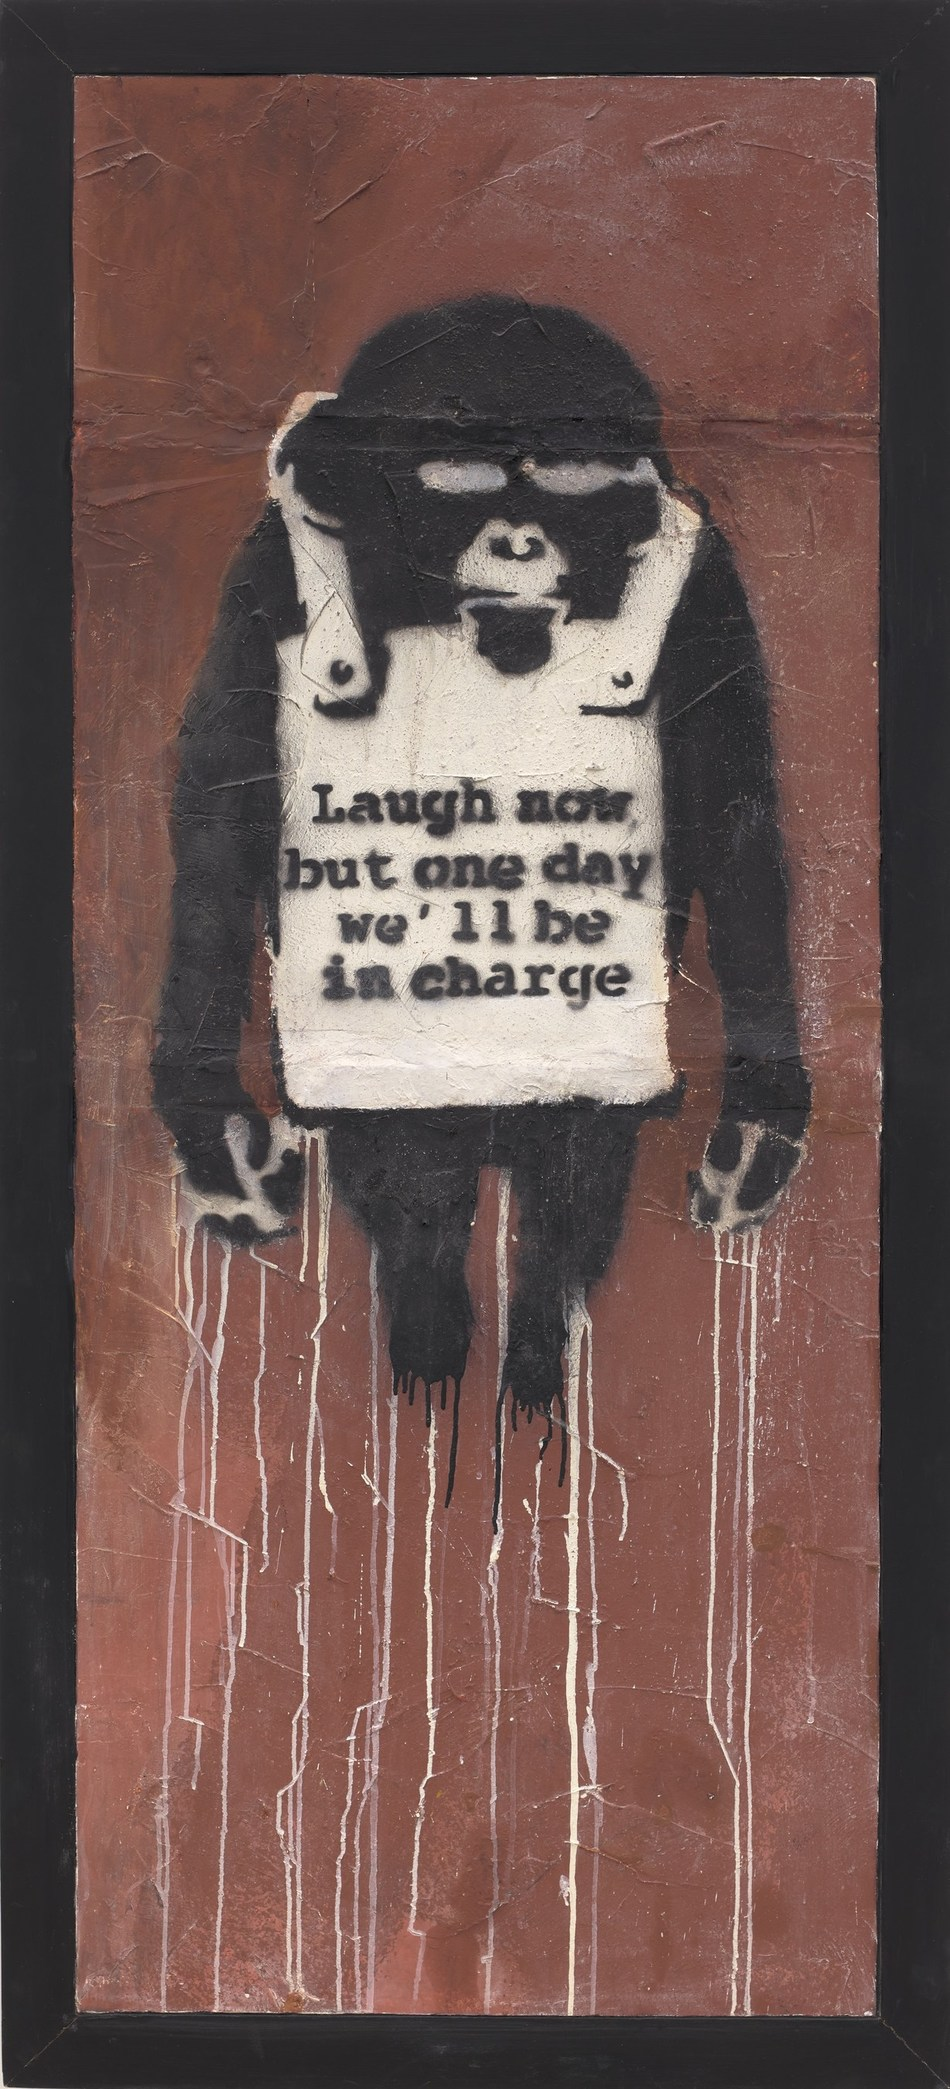 Banksy Laugh Now Panel A, 2002 spray paint and emulsion on dry wall, 178.5 x 74 cm. Estimate: HK$22,000,000 – 32,000,000/ US$ 2,820,000 - 4,100,000